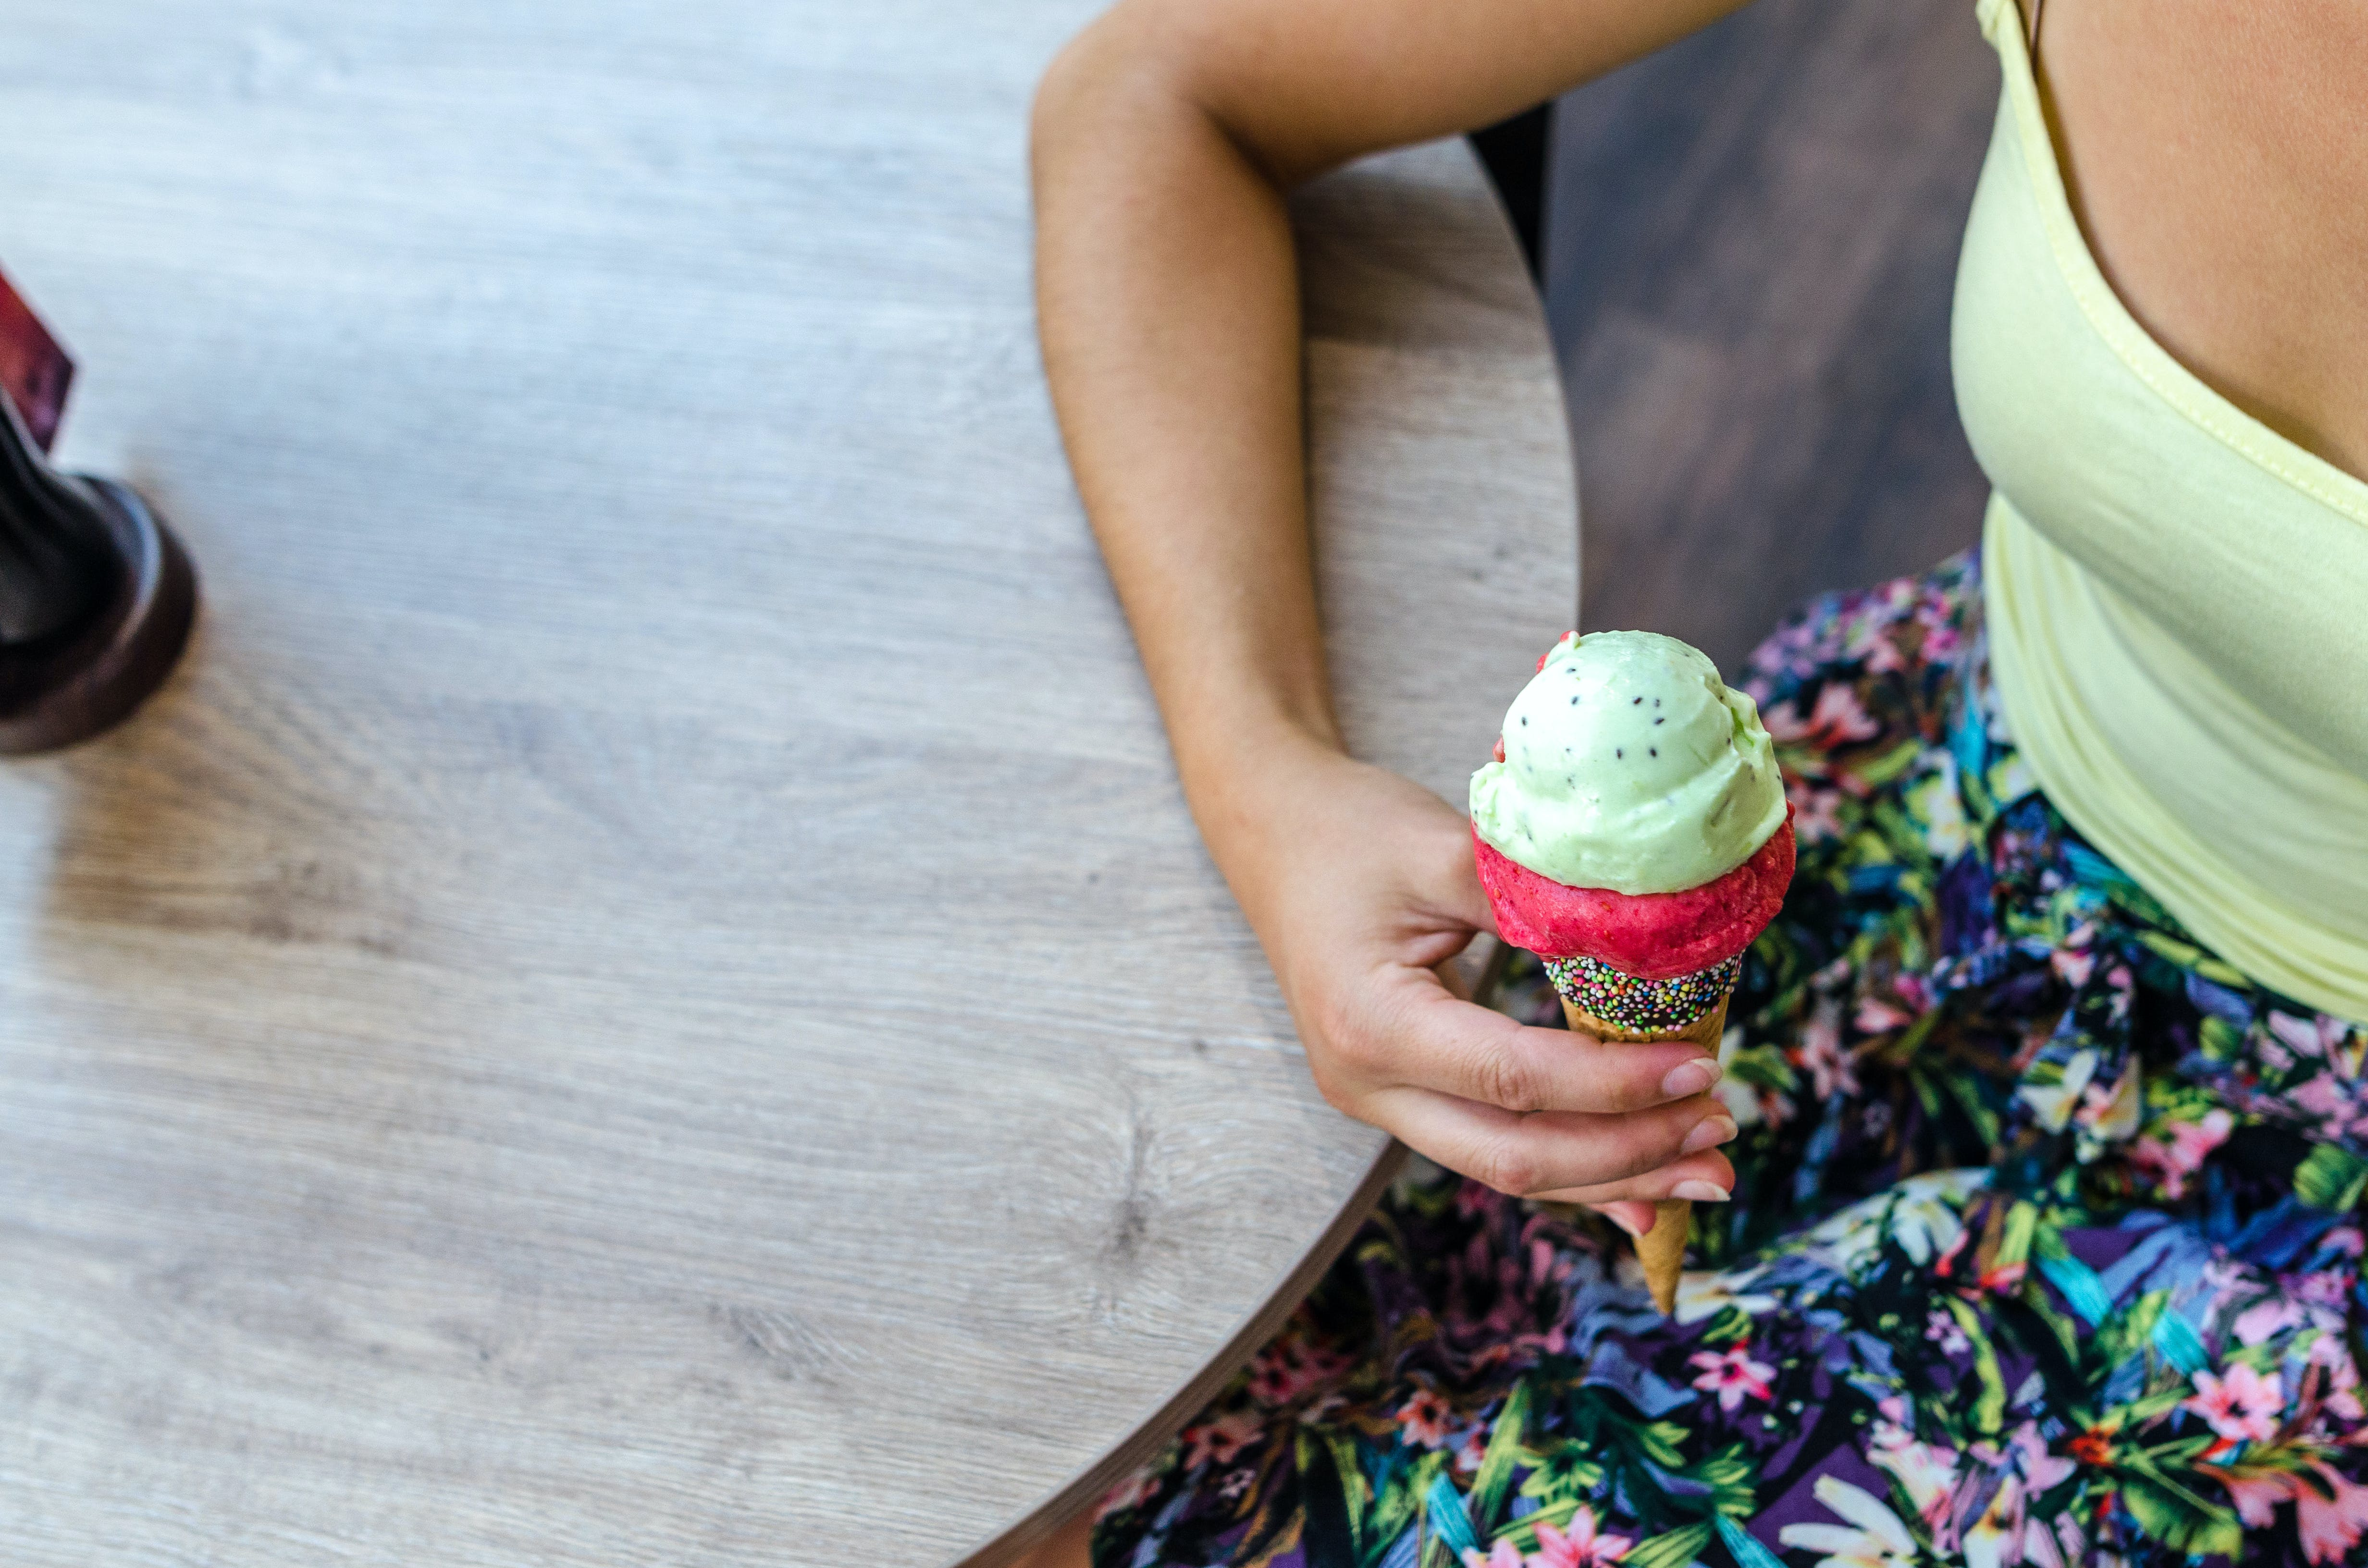 Woman Sitting While Holding Icecream Near Table